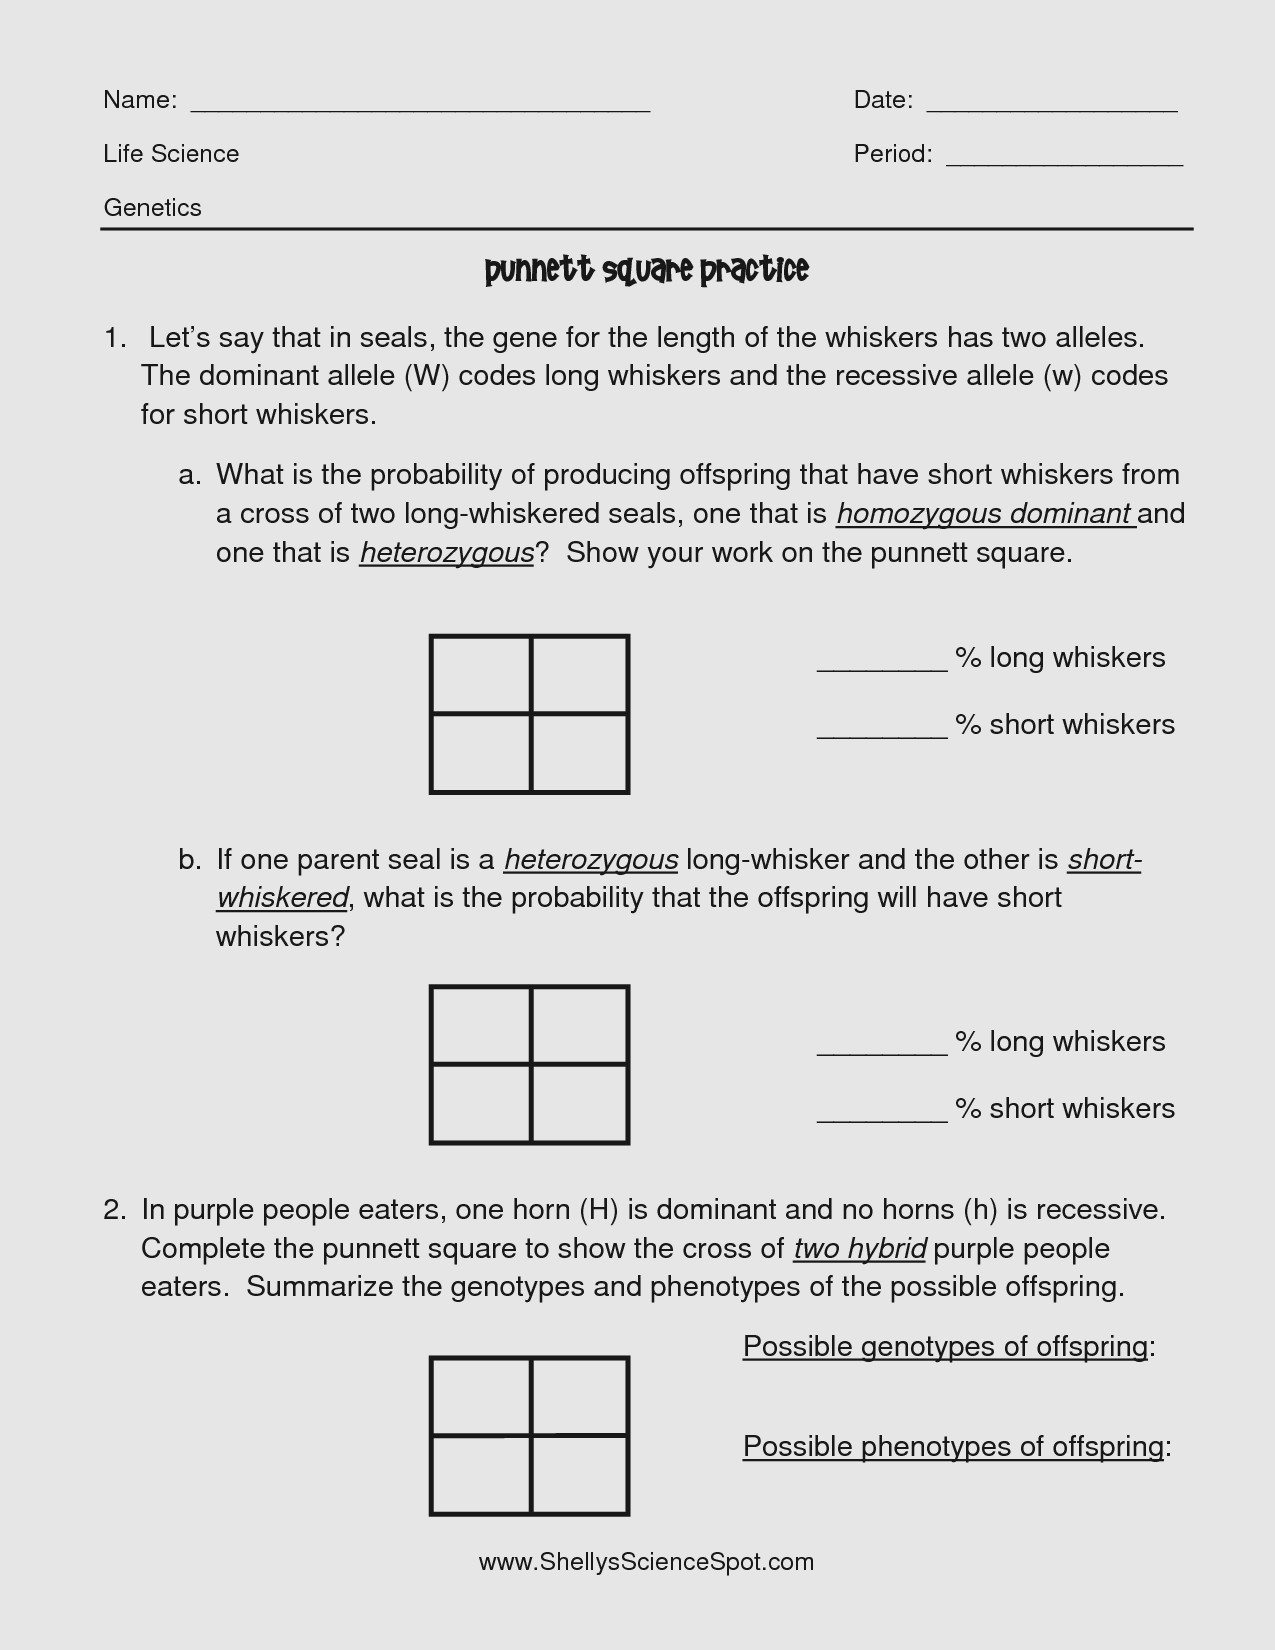 Speed Practice Problems Worksheet Acceleration Practice Problems Worksheet